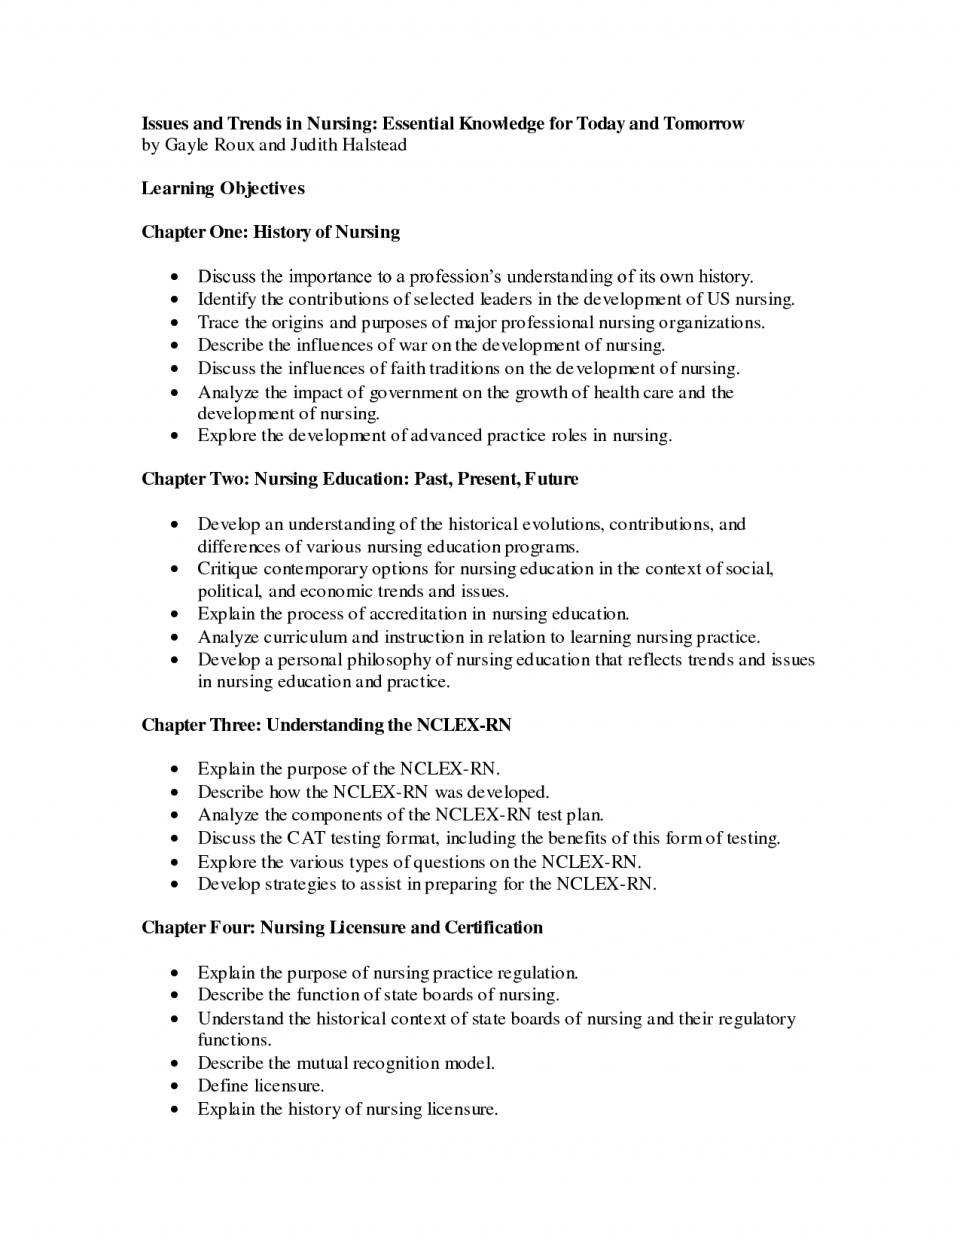 001 Research Paper Unusual Formatting Software In Chicago Style Format Apa 960